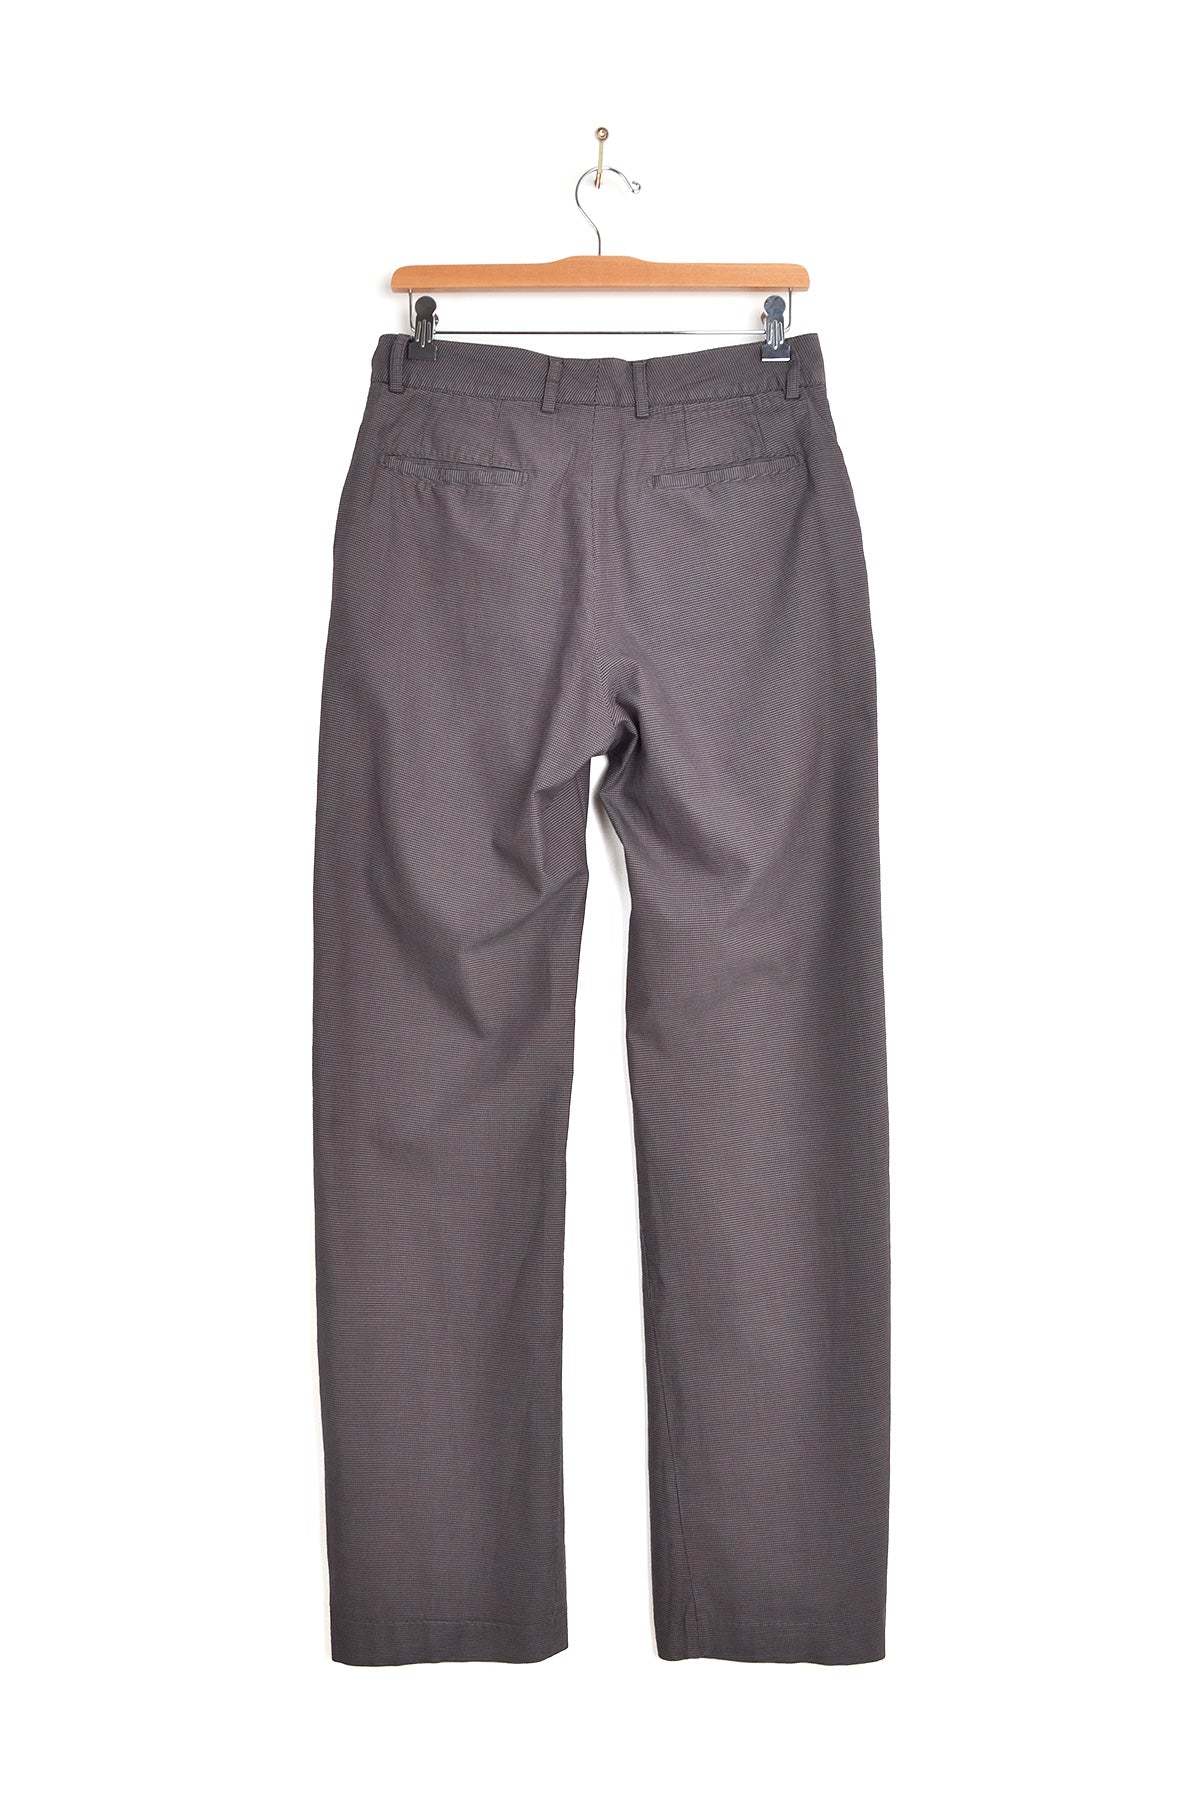 2002 S/S TROUSERS IN HOUNDS-TOOTH WASHED COTTON